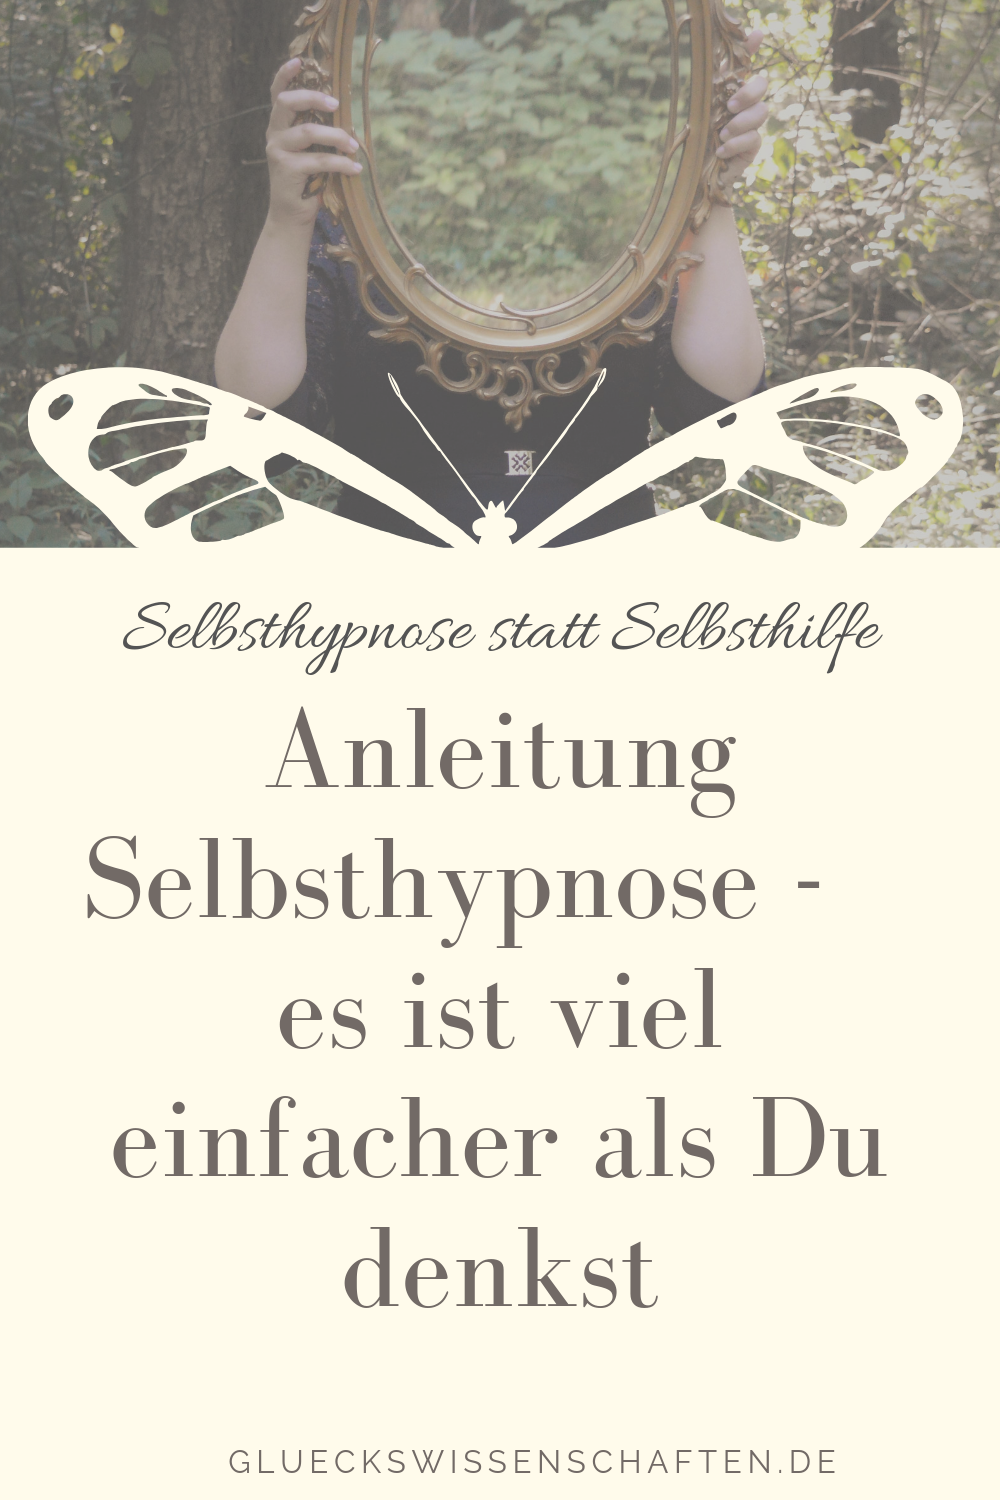 Anleitung Selbsthypnose